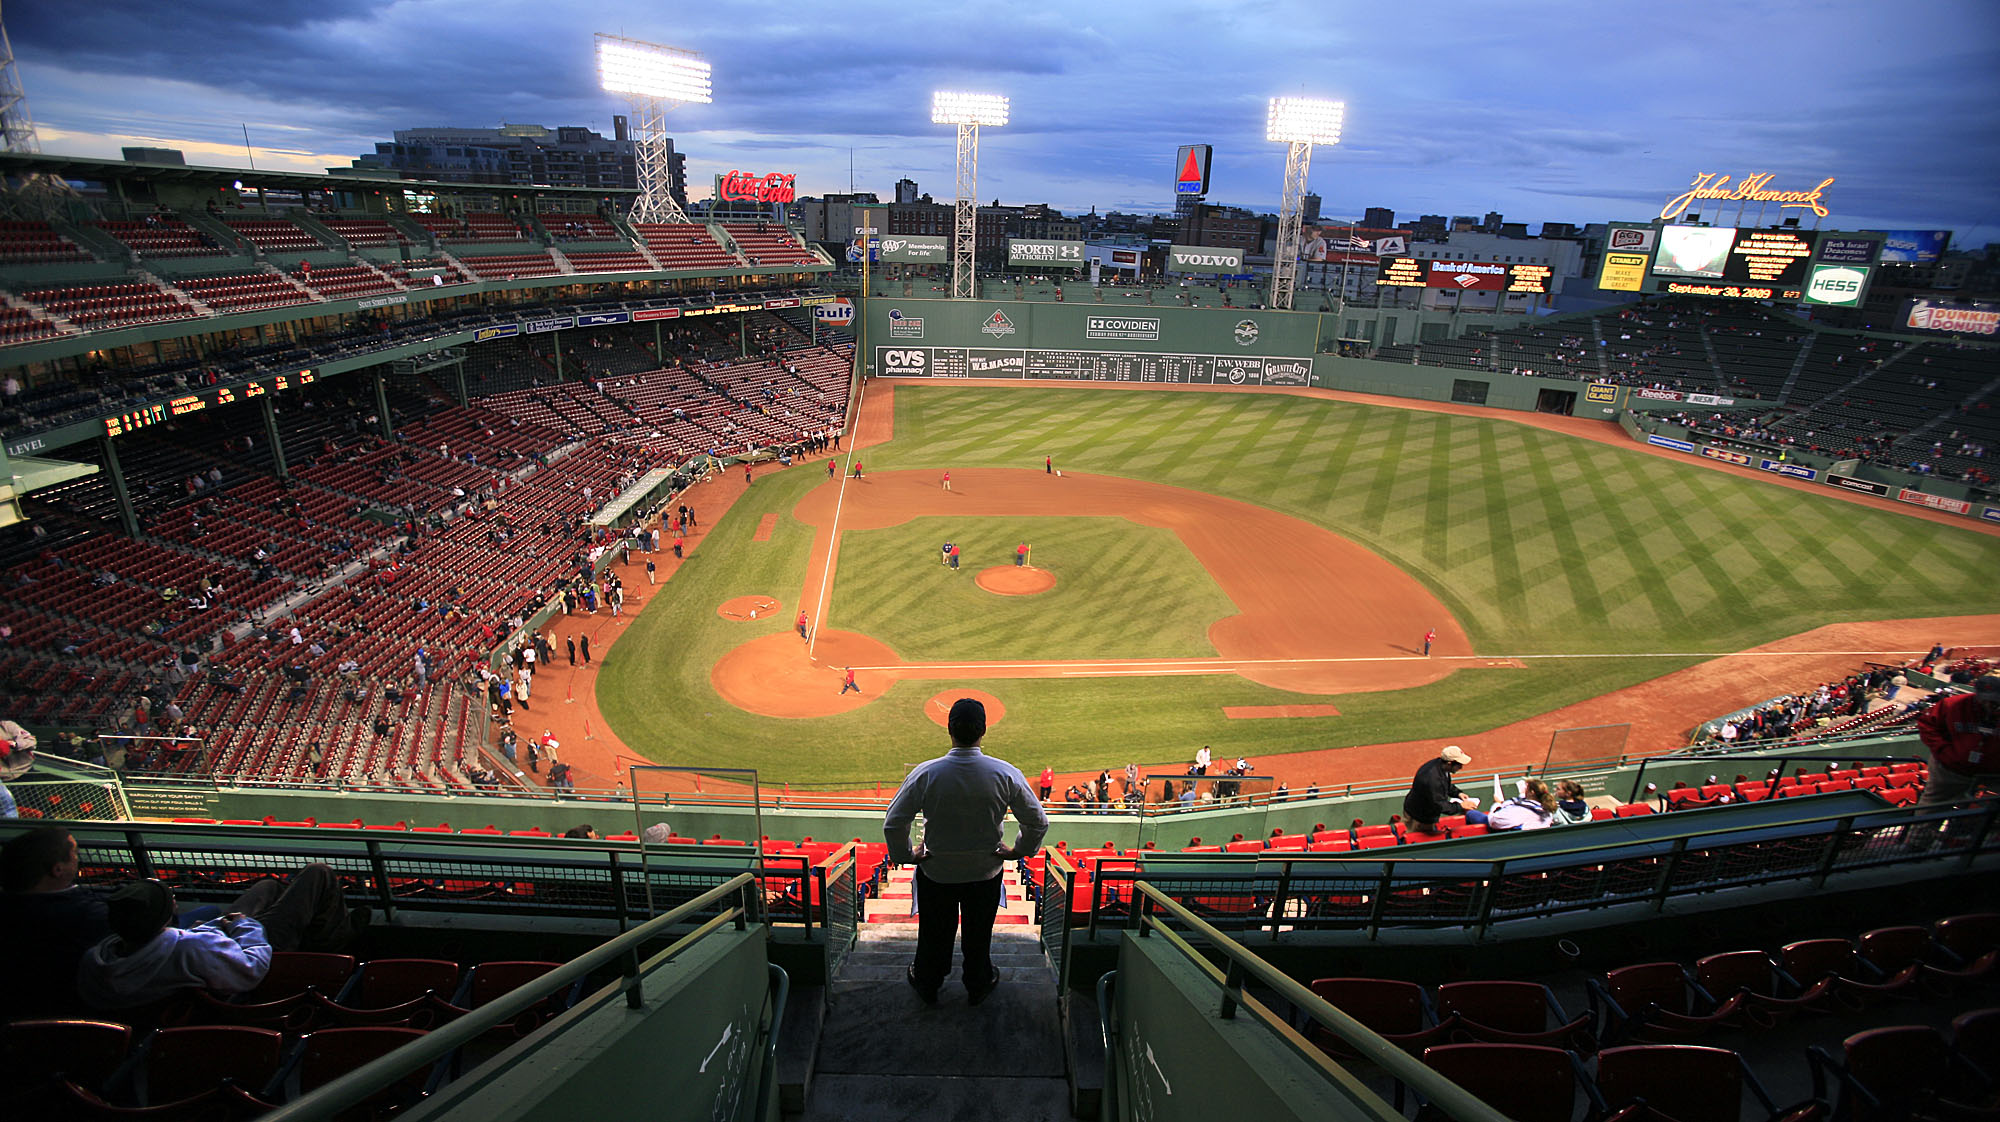 Fenway-park-Things to see in Boston